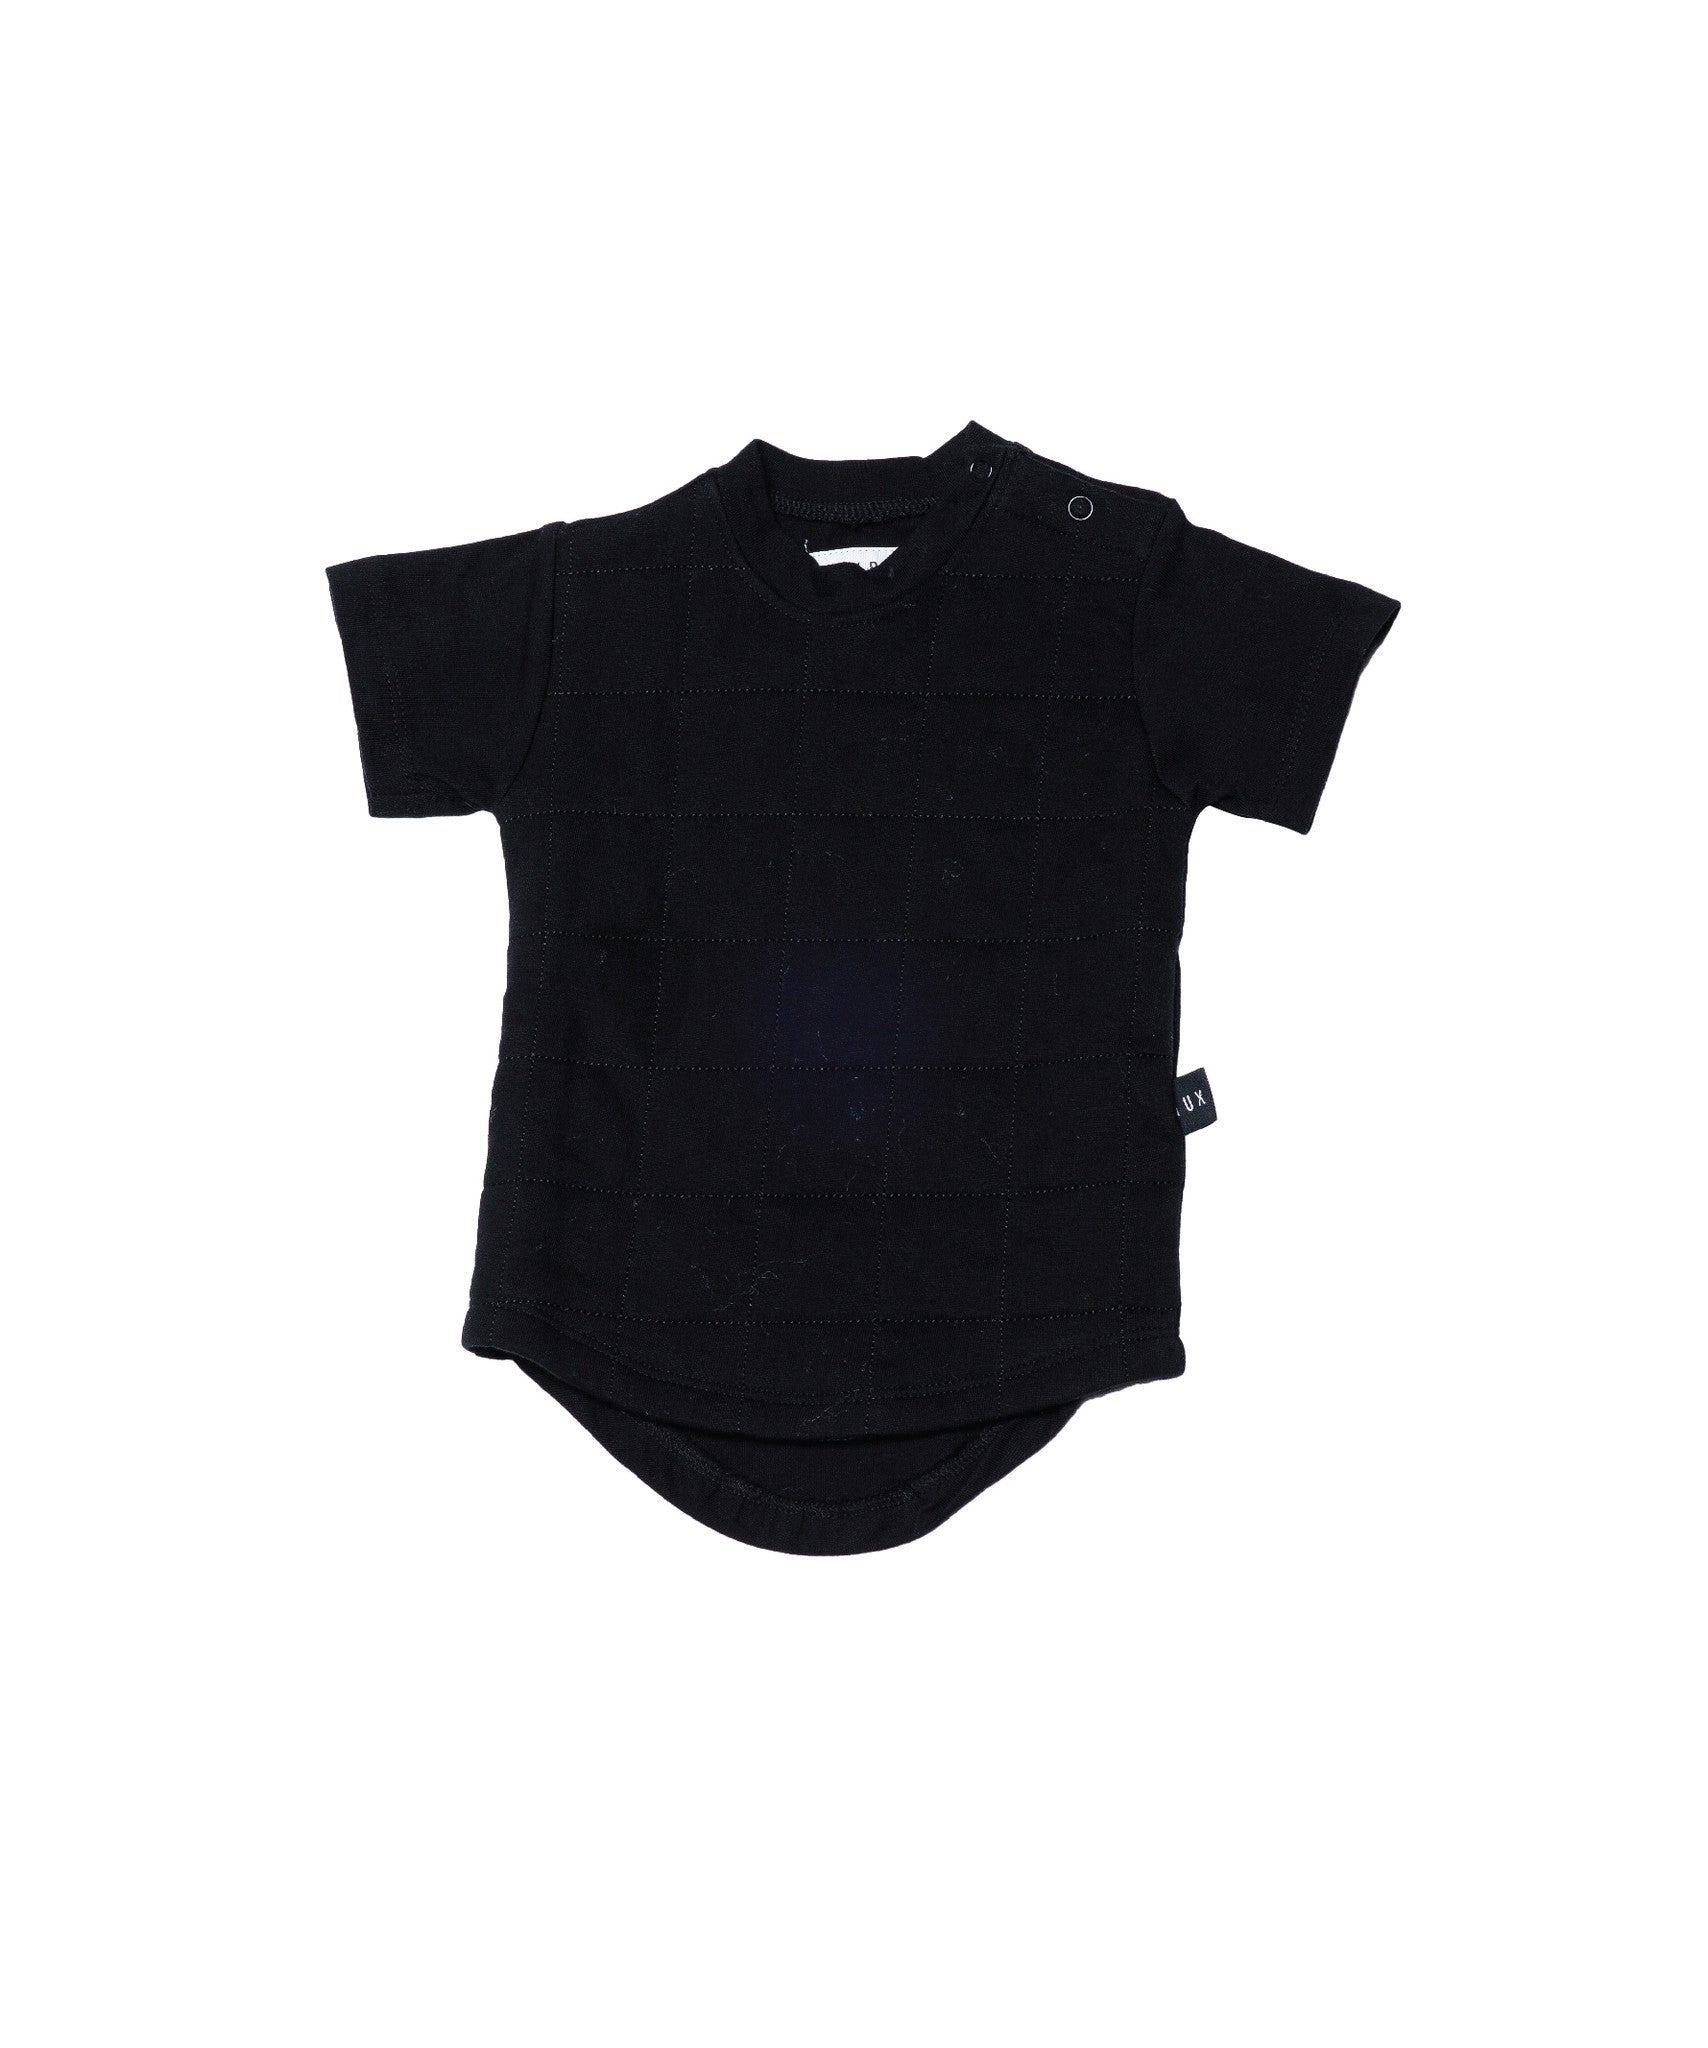 Huxbaby bunny quilted drop back tee